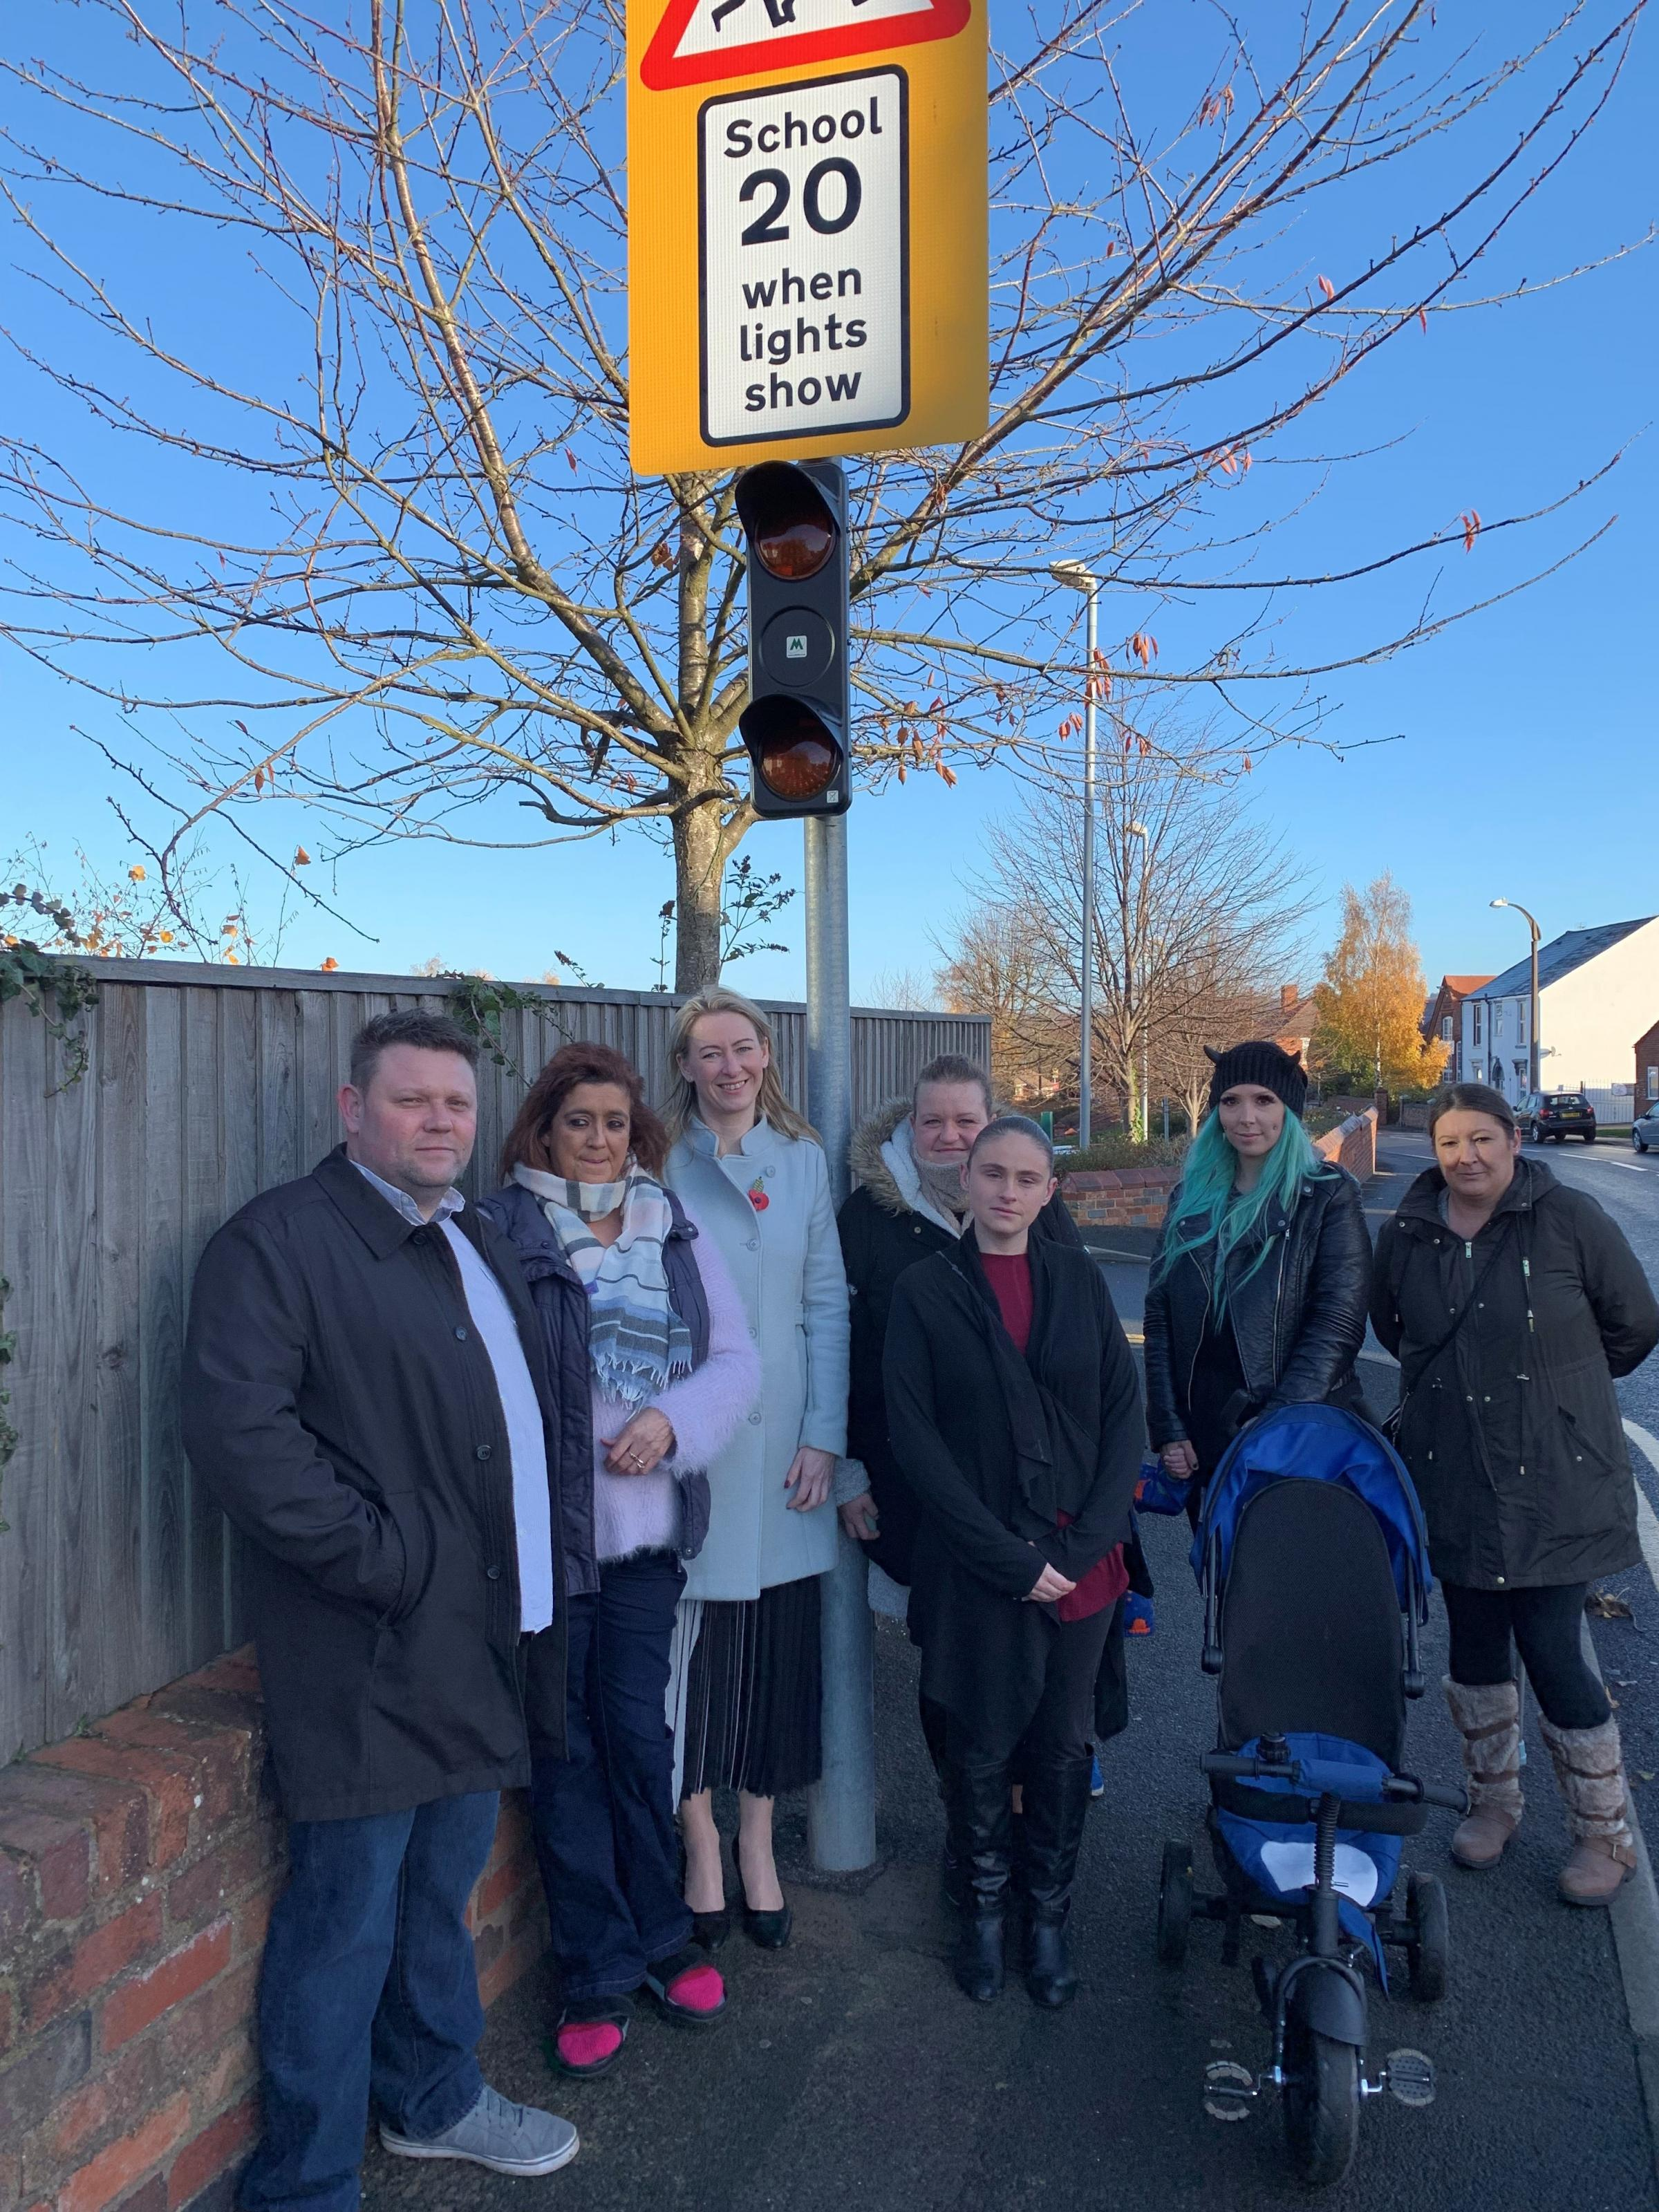 From left: Campaigners James Clinton and Lisa Scully, Colley Gate Primary headteacher Helen Hale and several members of the school's Parent Teacher Association.